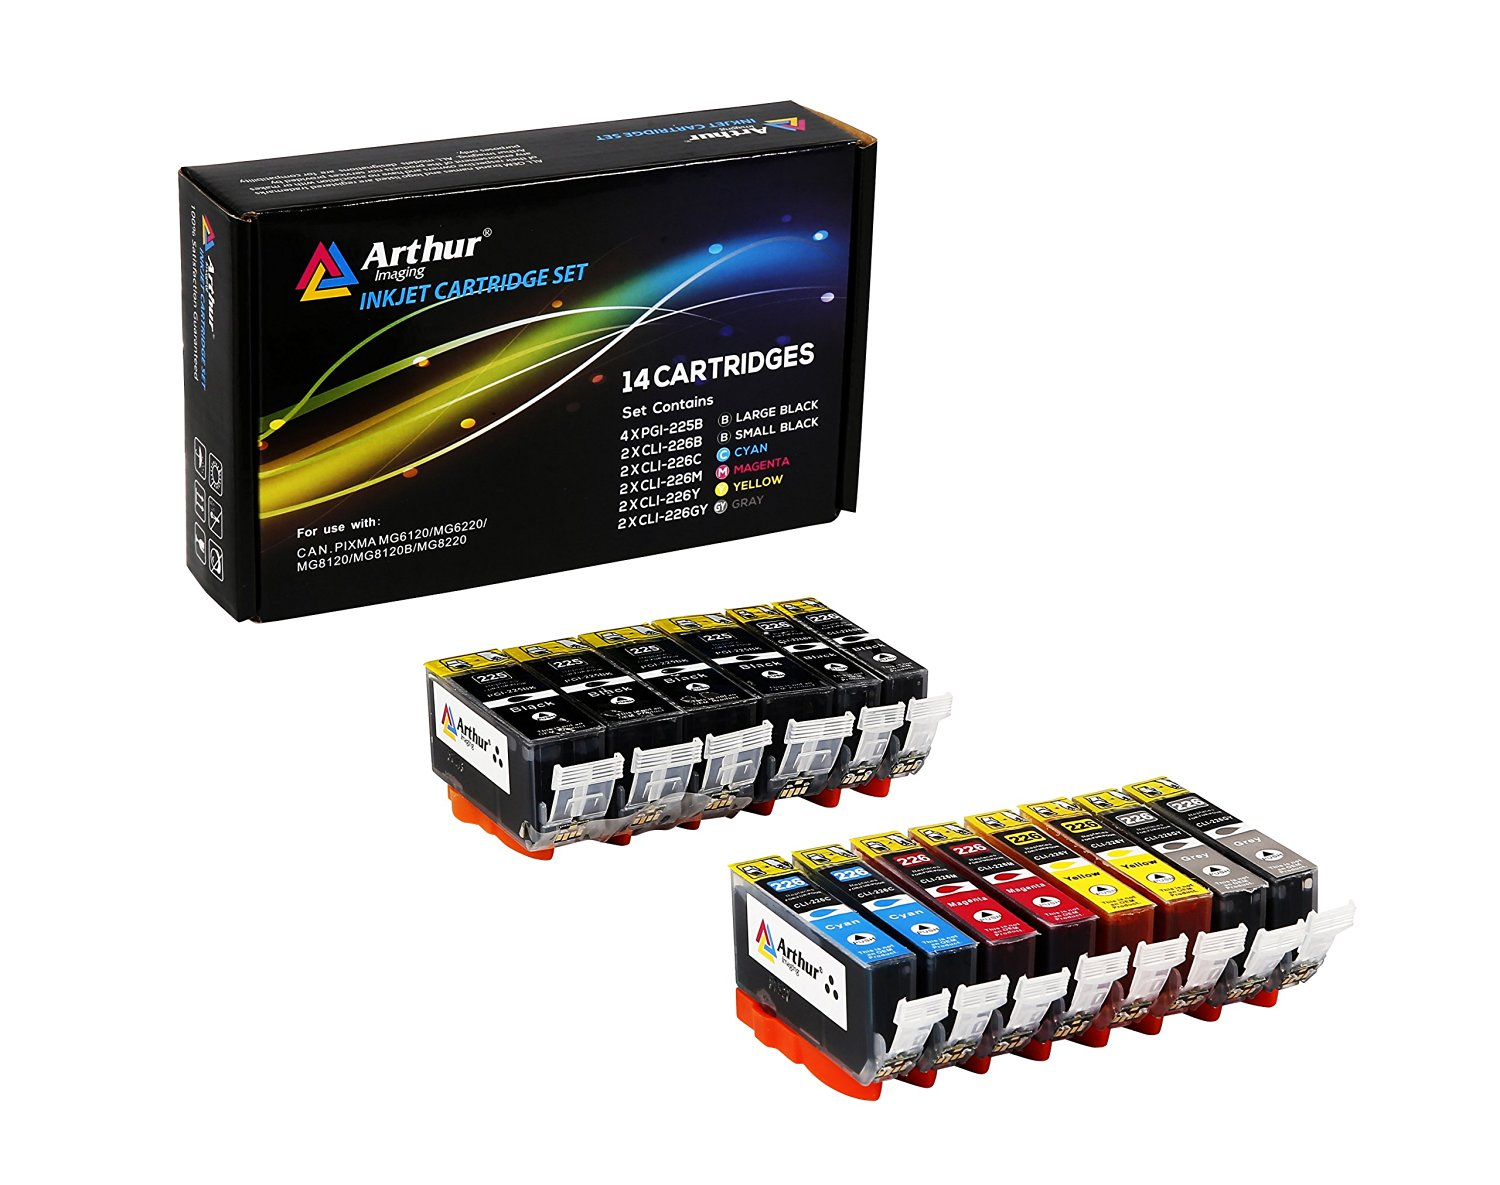 14 Pack Arthur Imaging Compatible Ink Cartridge Replacement for Canon PGI-225XL CLI-226XL (4 Large Black, 2 Small Black, 2 Cyan, 2 Yellow, 2 Magenta, 2 Gray, 14-Pack)